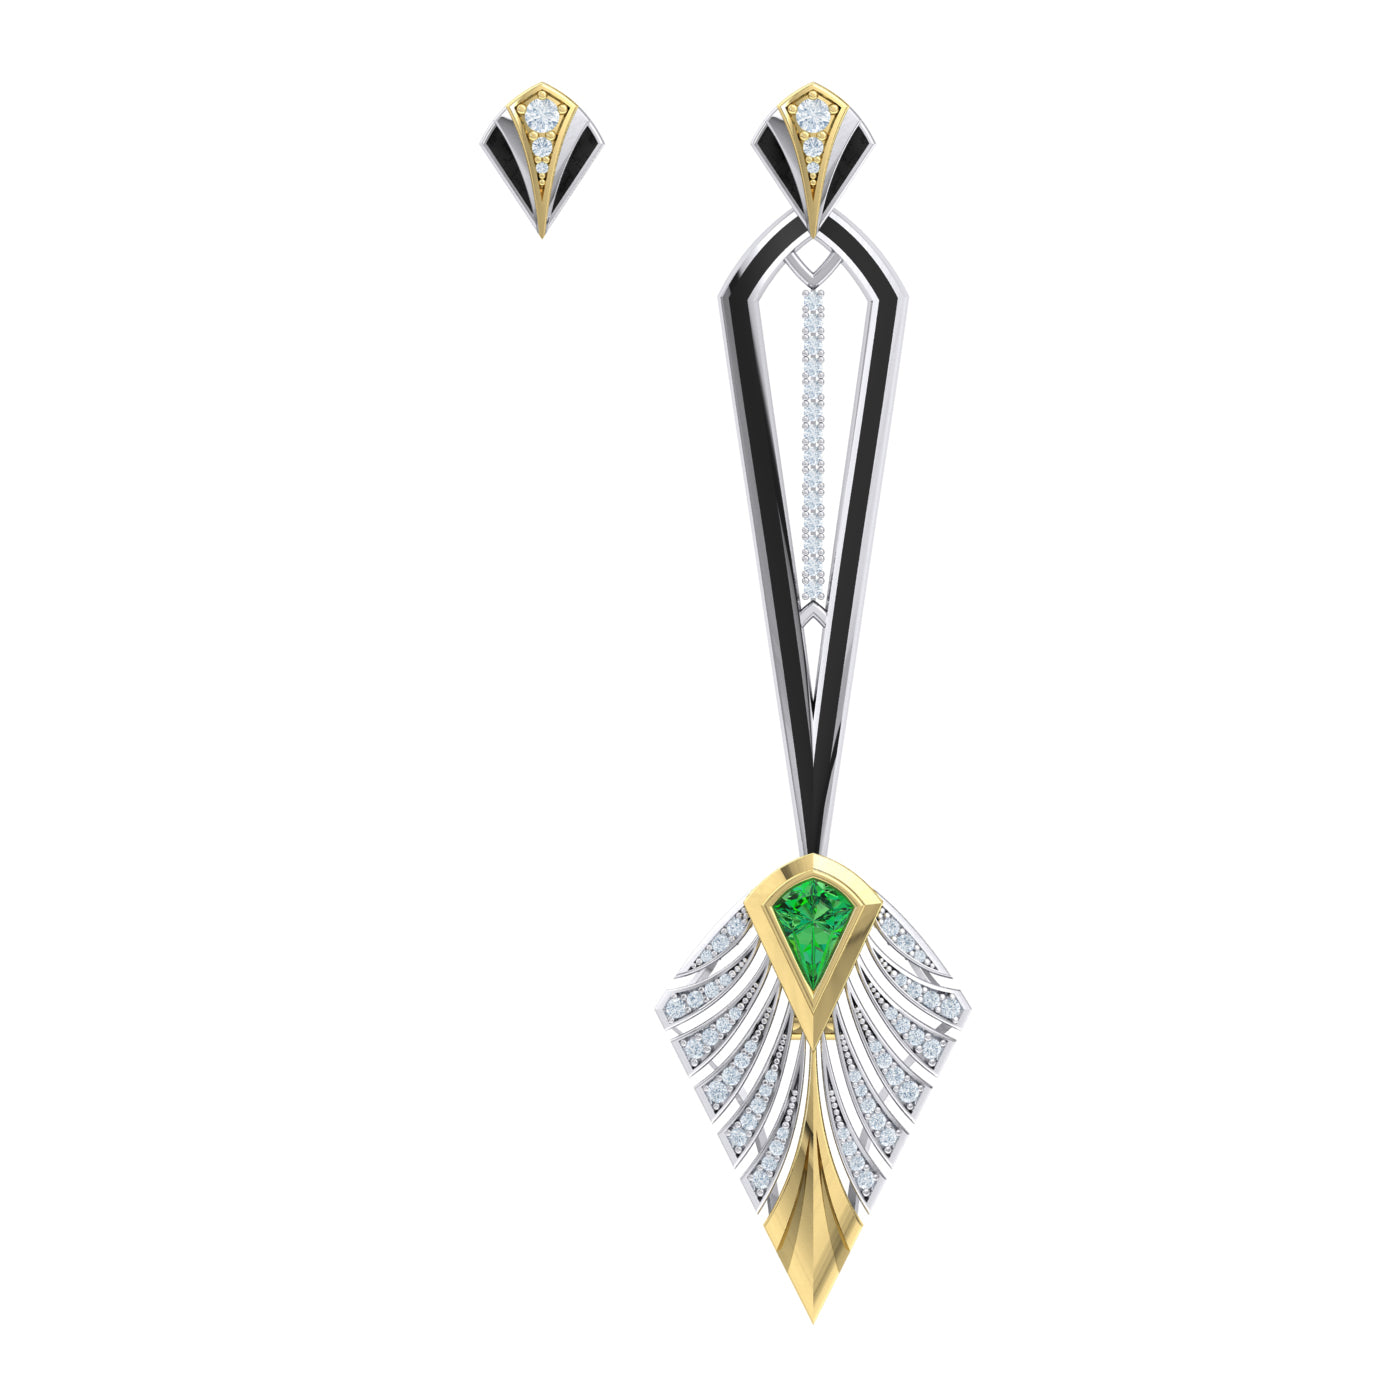 Asymmetrical Earring in 18kt gold